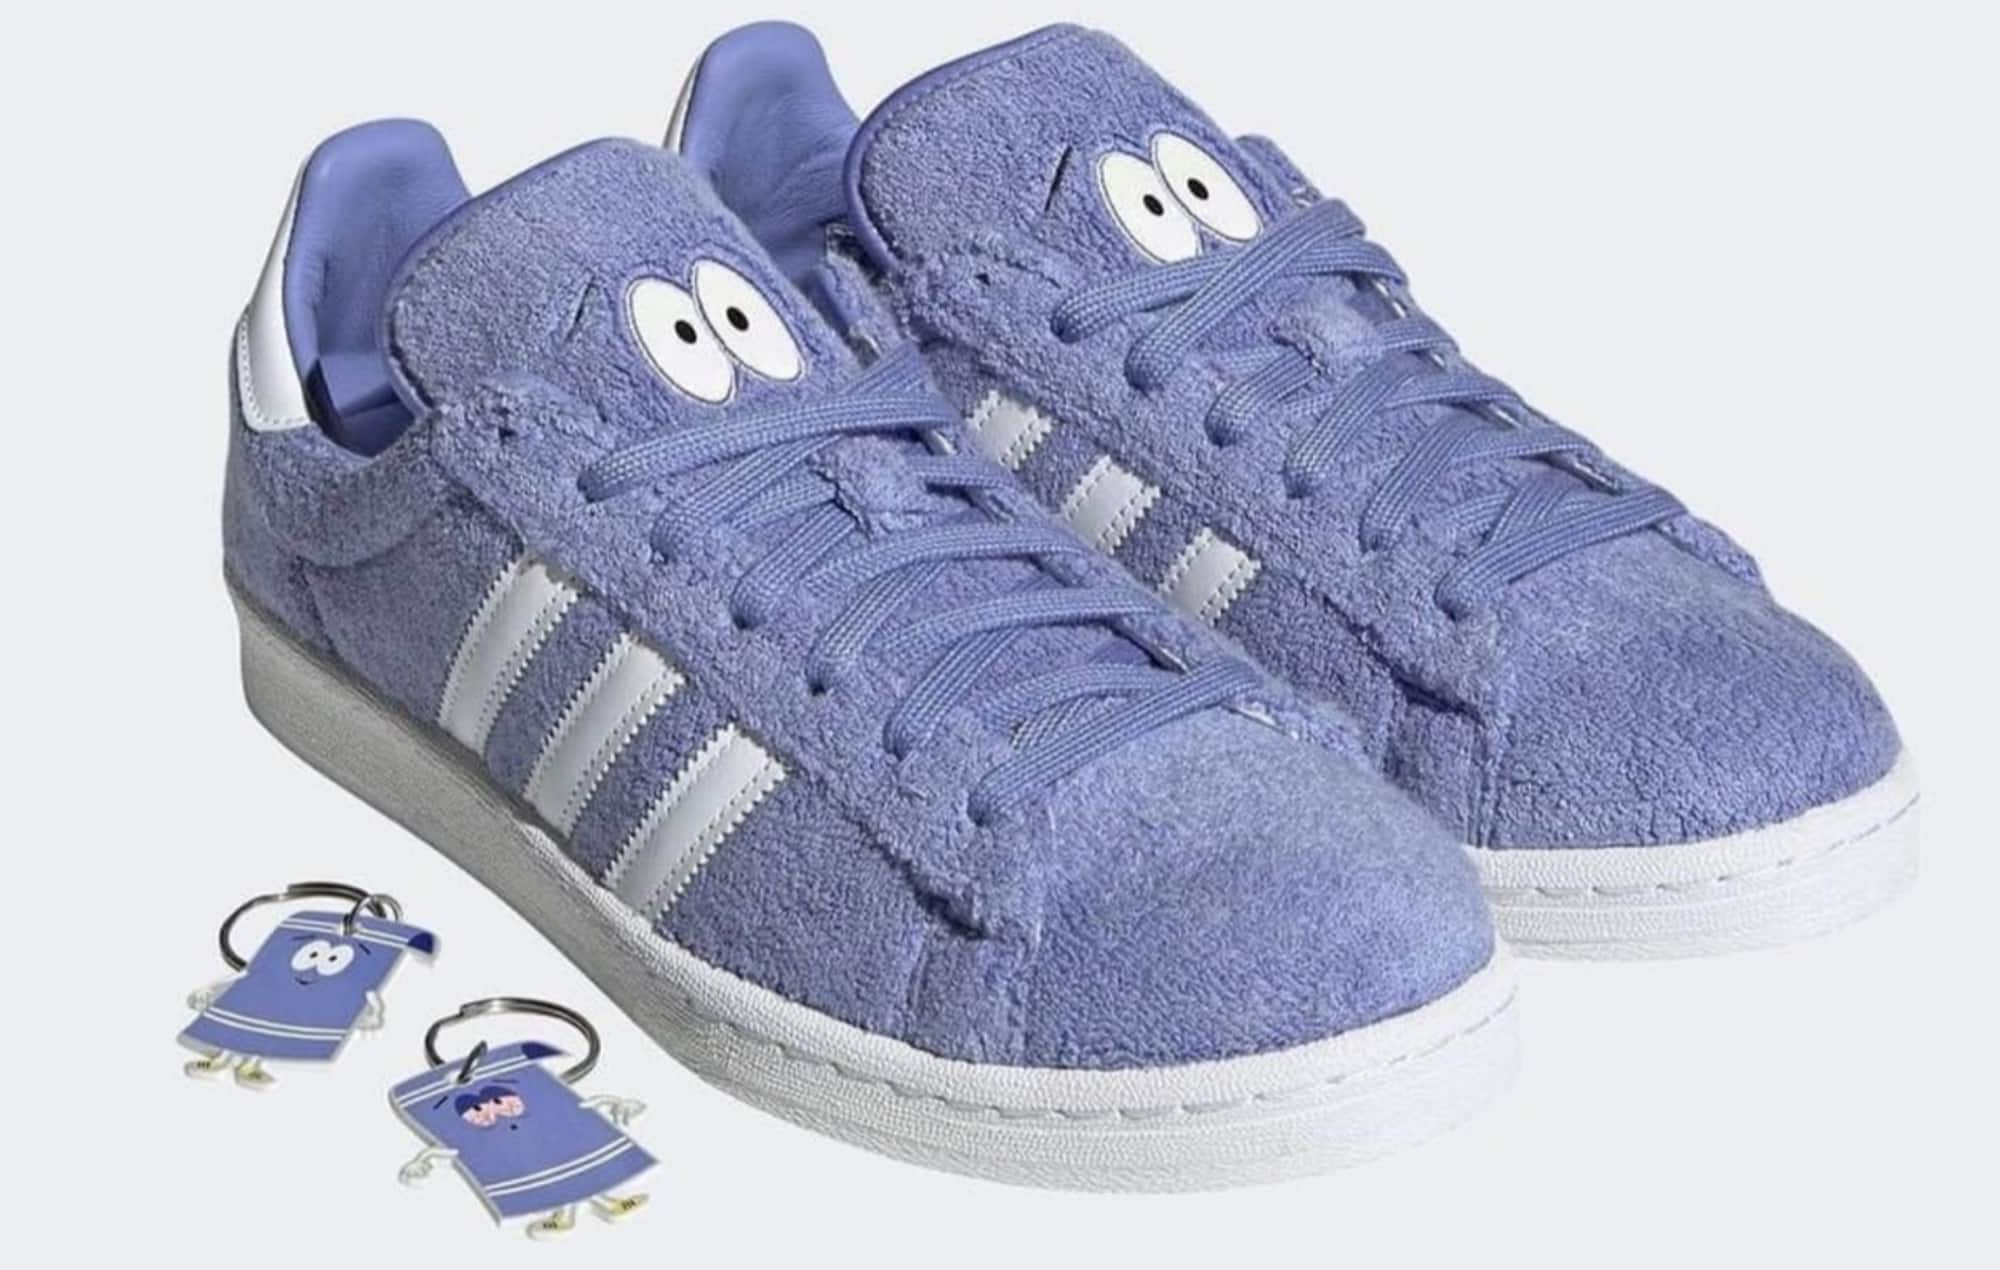 Limited Edition adidas Campus 80s South Park Towelie Shoes + Keychains for $100 (Raffle on 4/20)